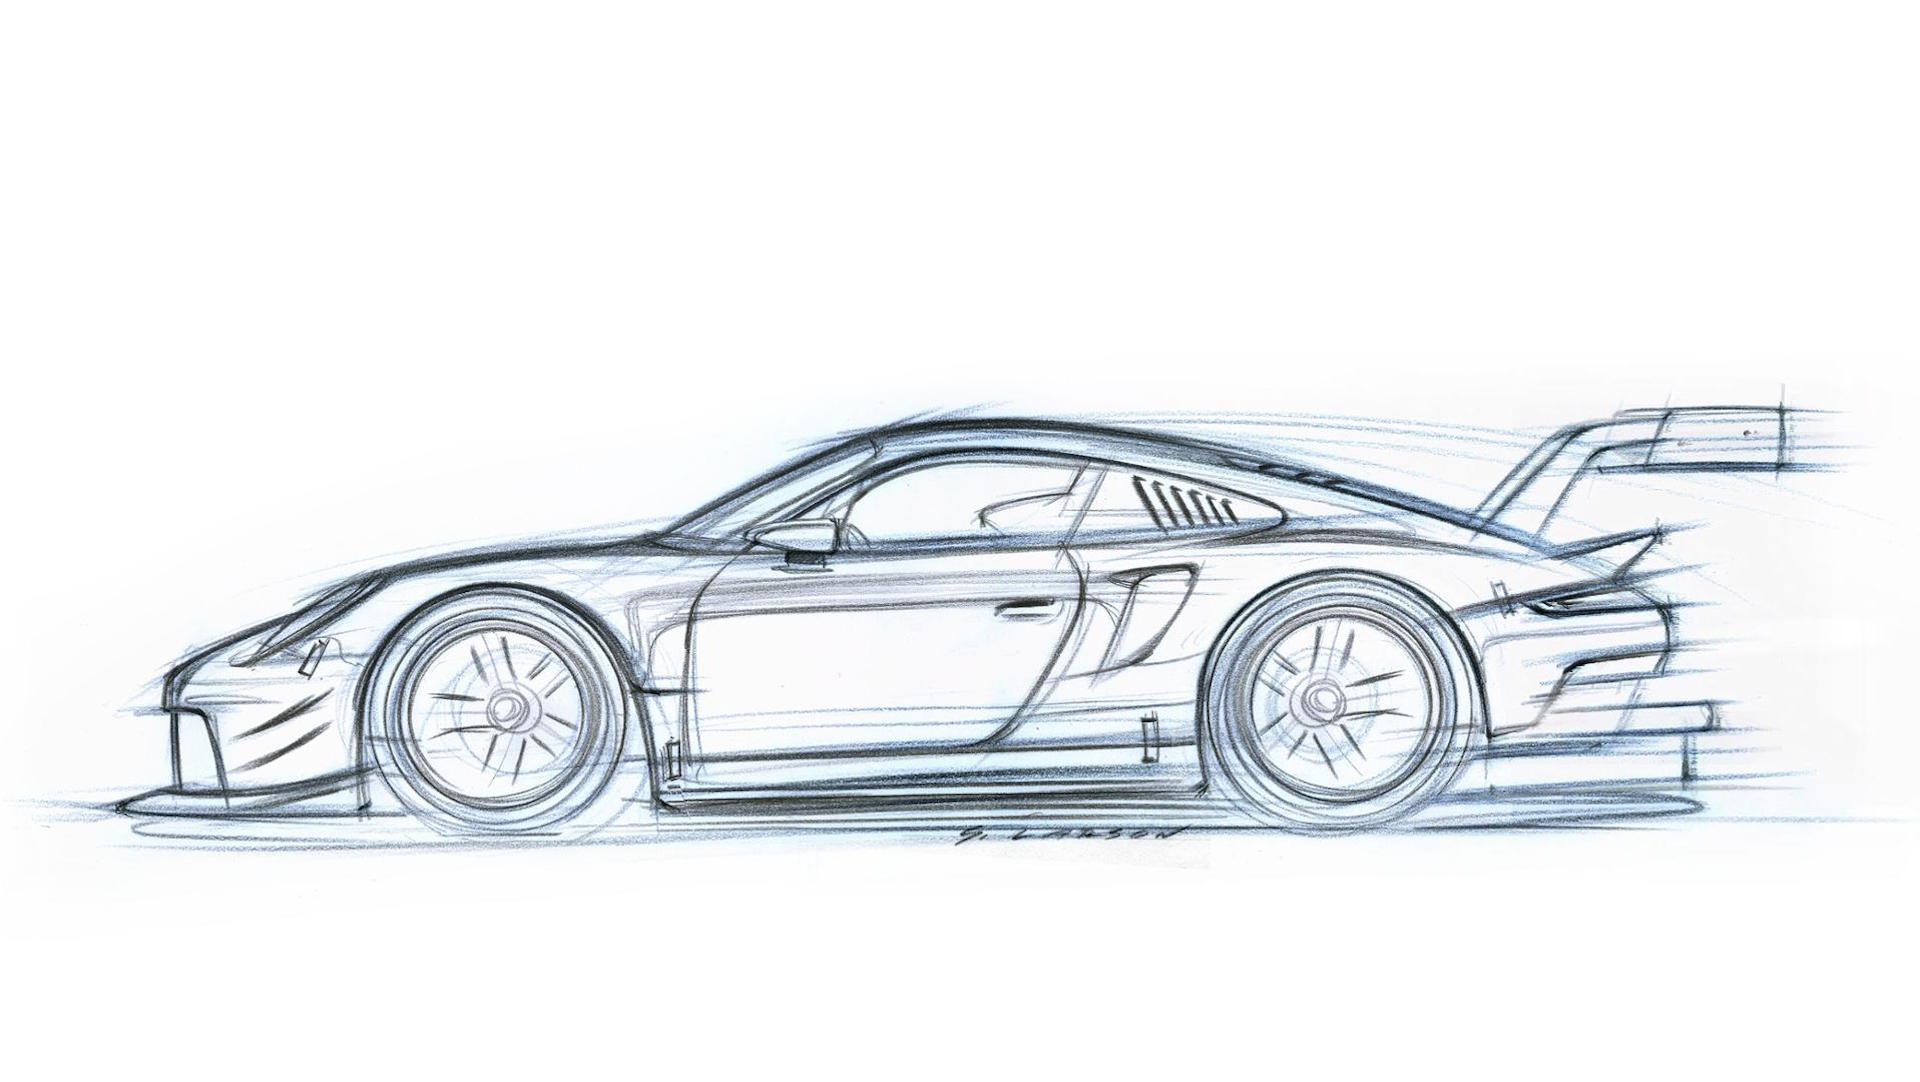 This Is Our Best Look Yet at the Mid-Engined Porsche 911 RSR - The Drive